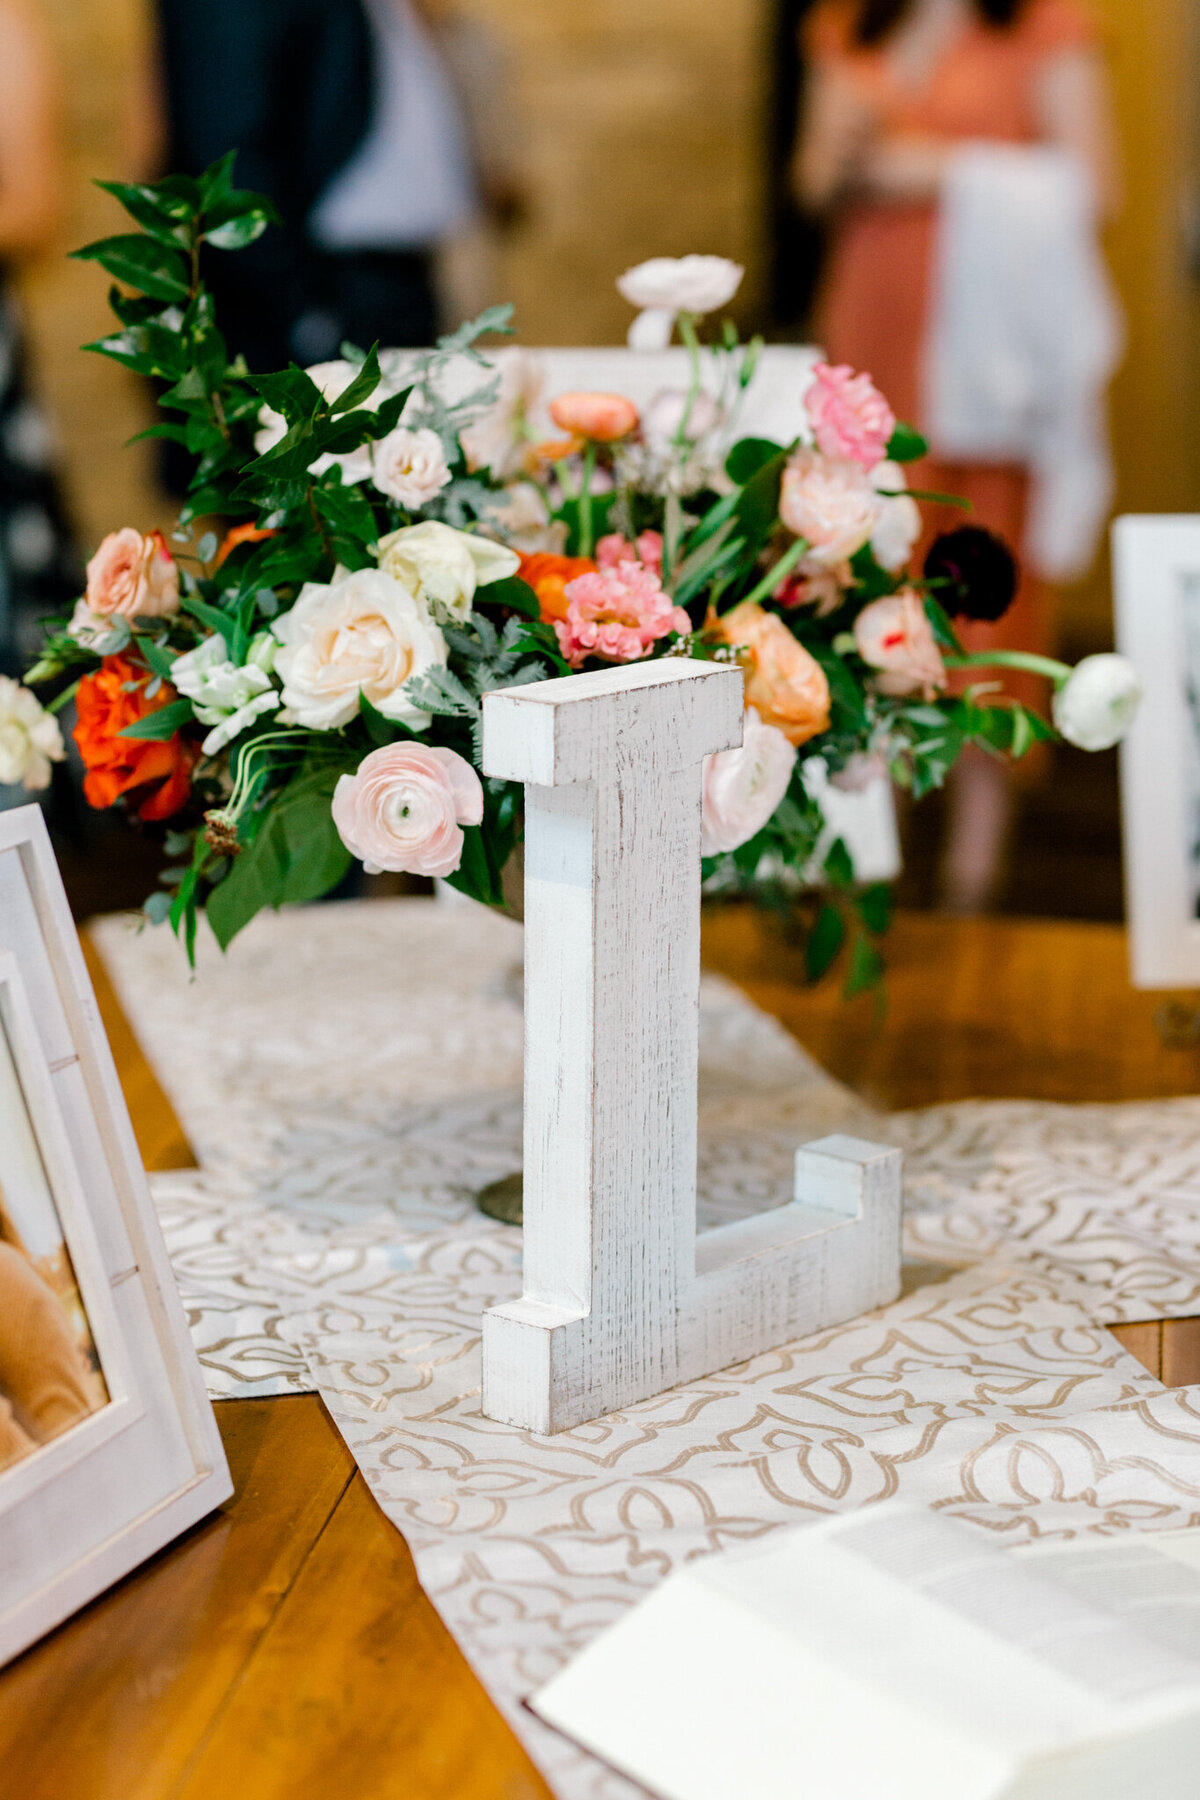 Kaylee & Michael's Wedding at Watermark Community Church | Dallas Wedding Photographer | Sami Kathryn Photography-97